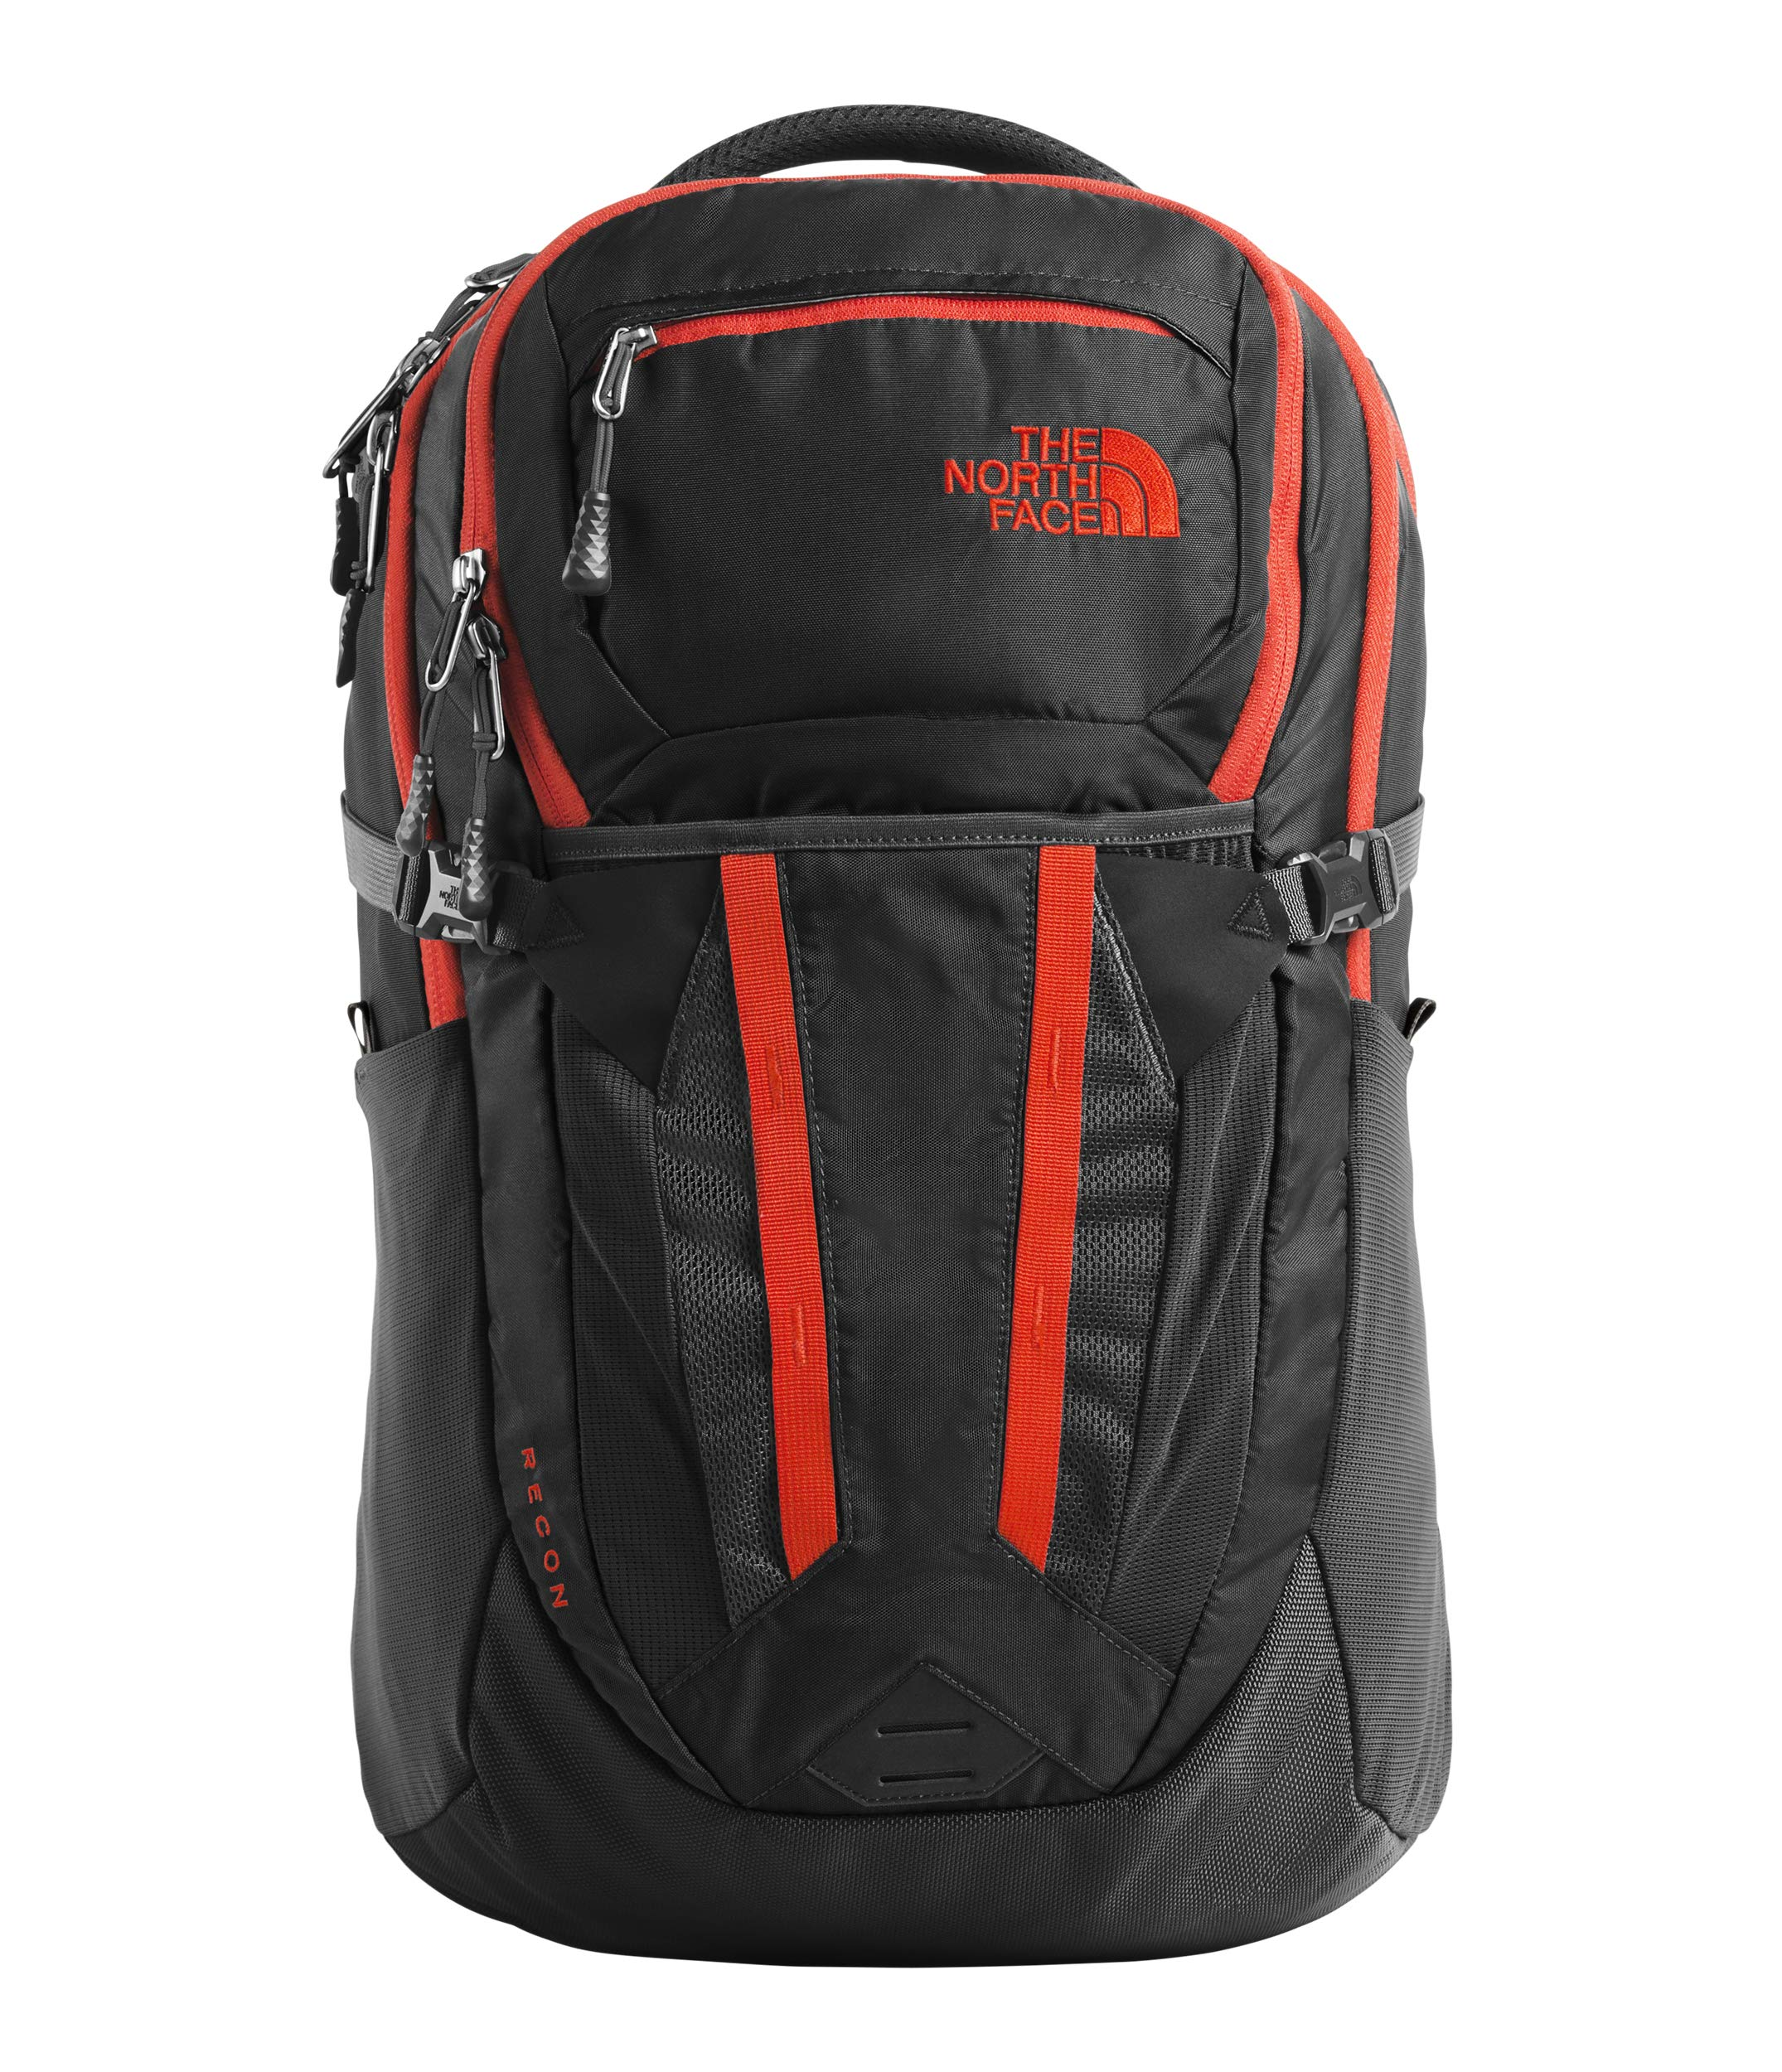 The North Face Unisex Recon Asphalt Grey/Fiery Red One Size